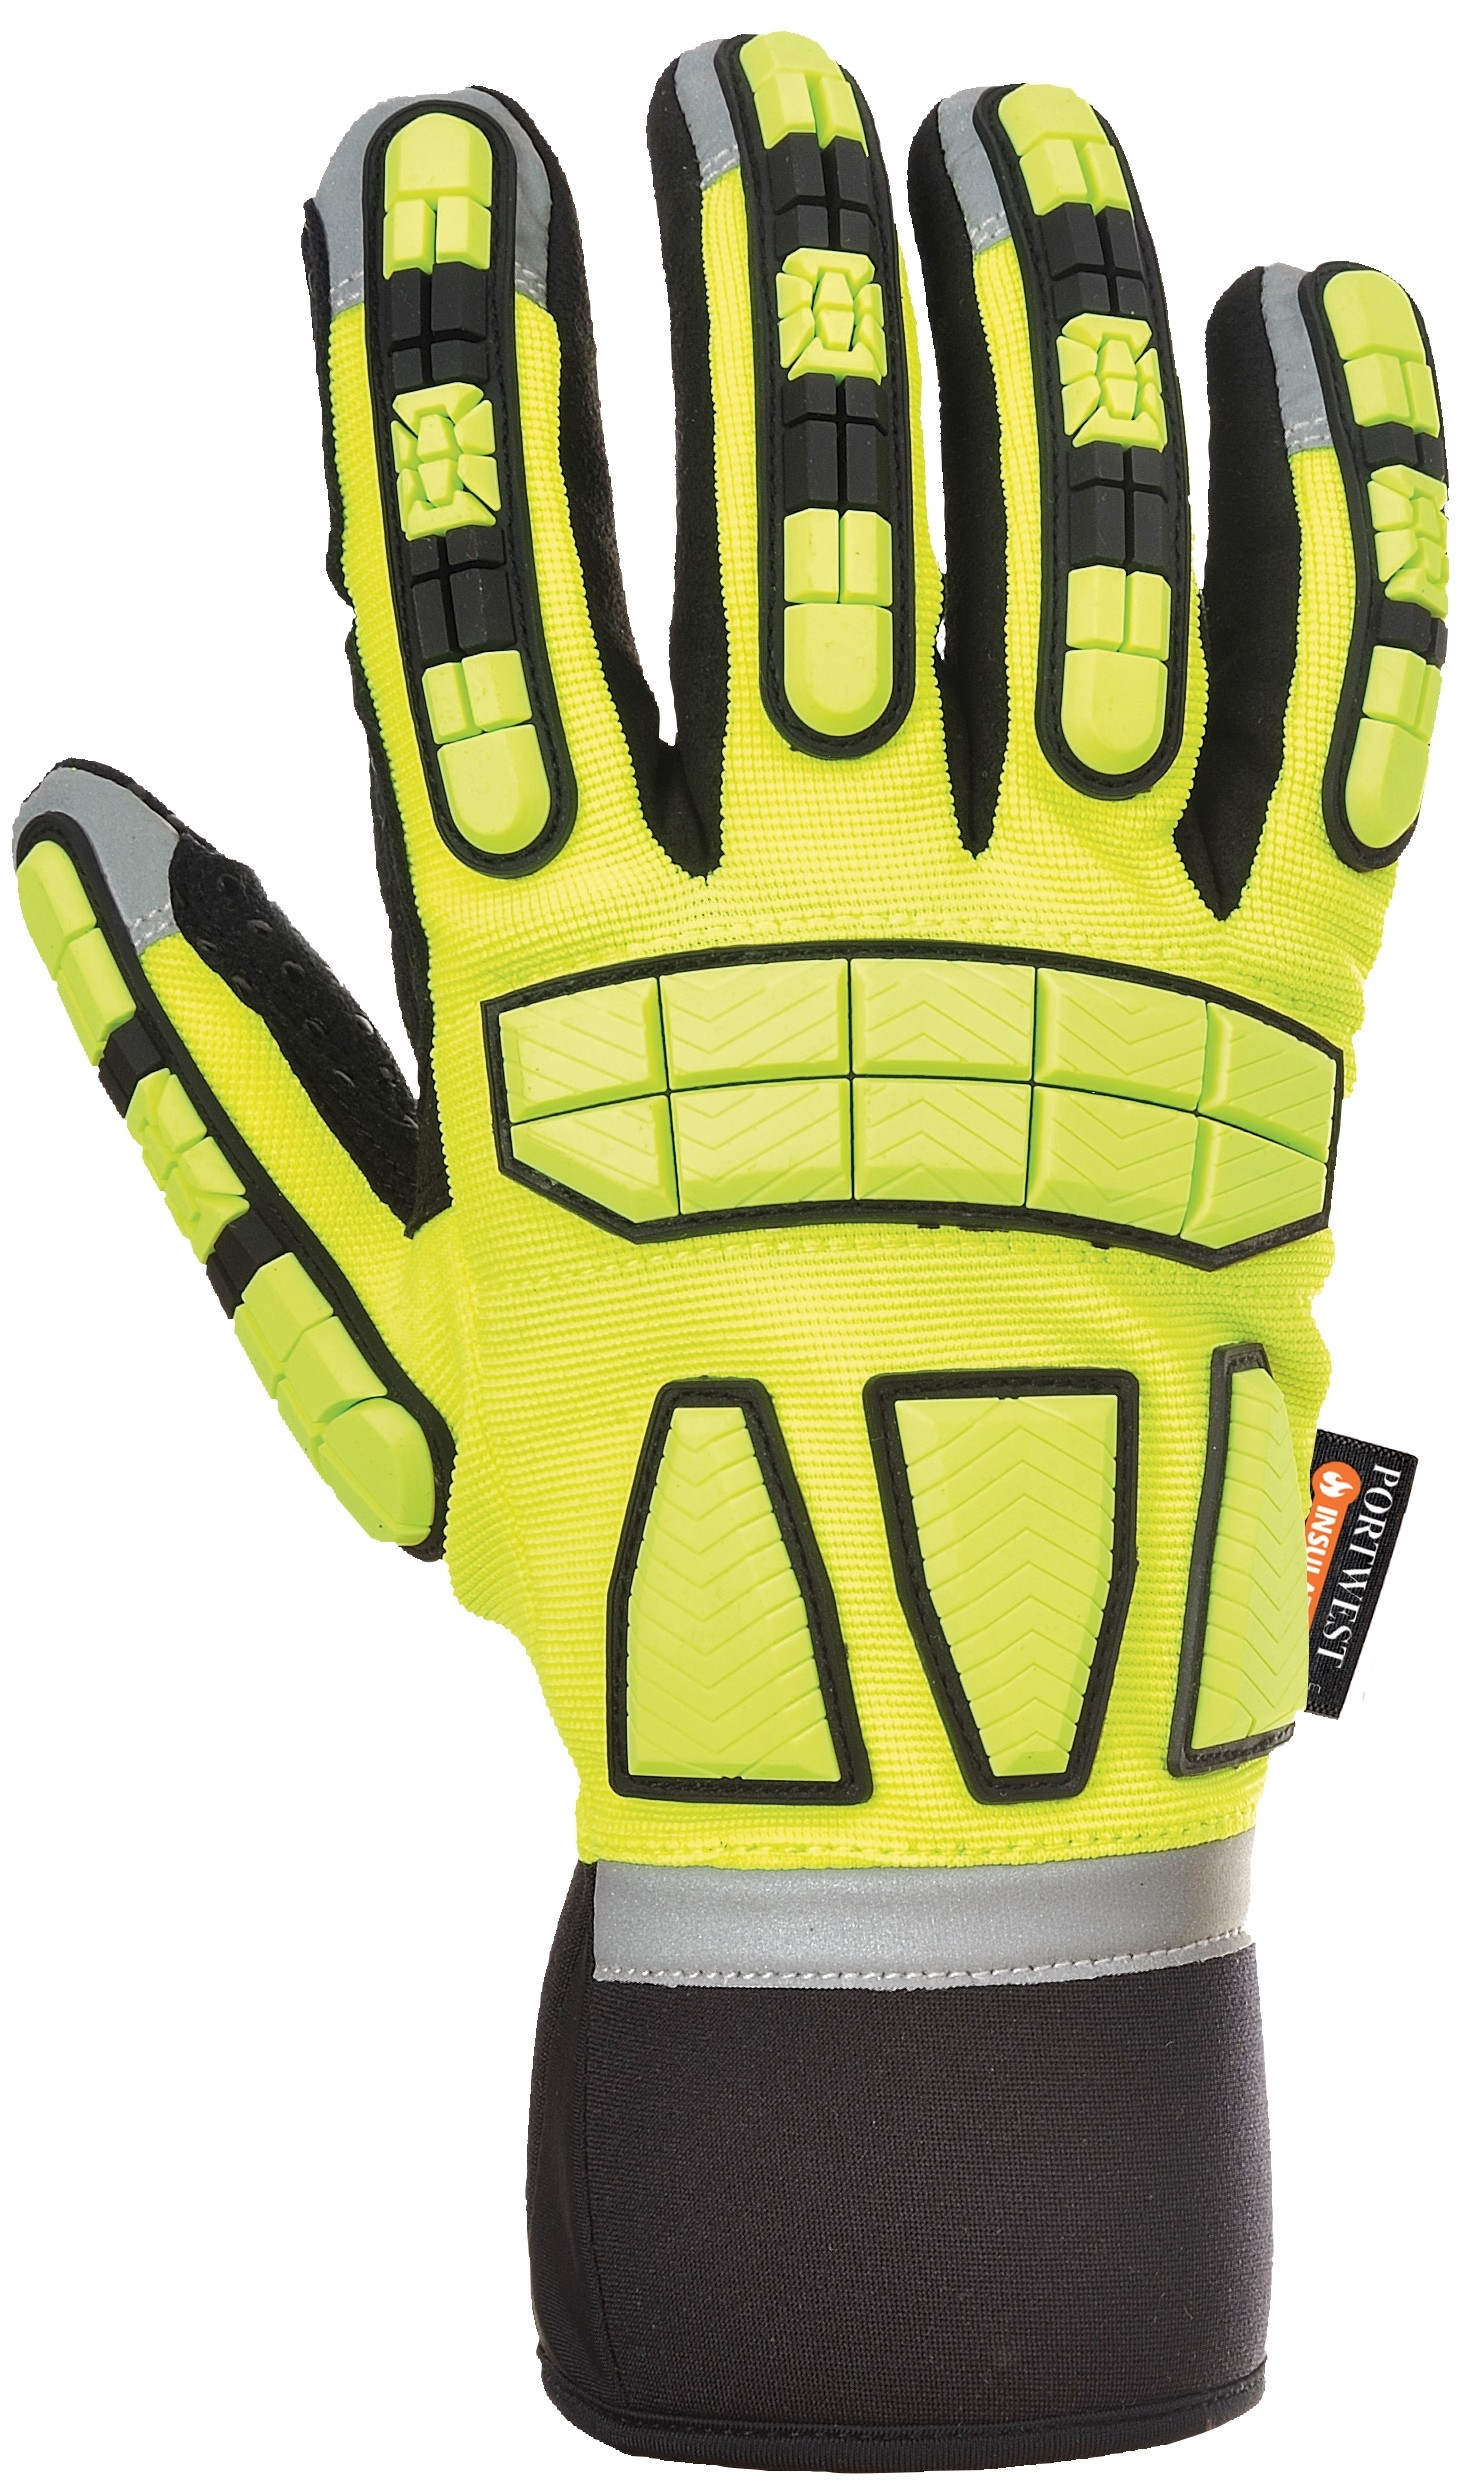 Portwest Lined Impact resistant Glove - A725